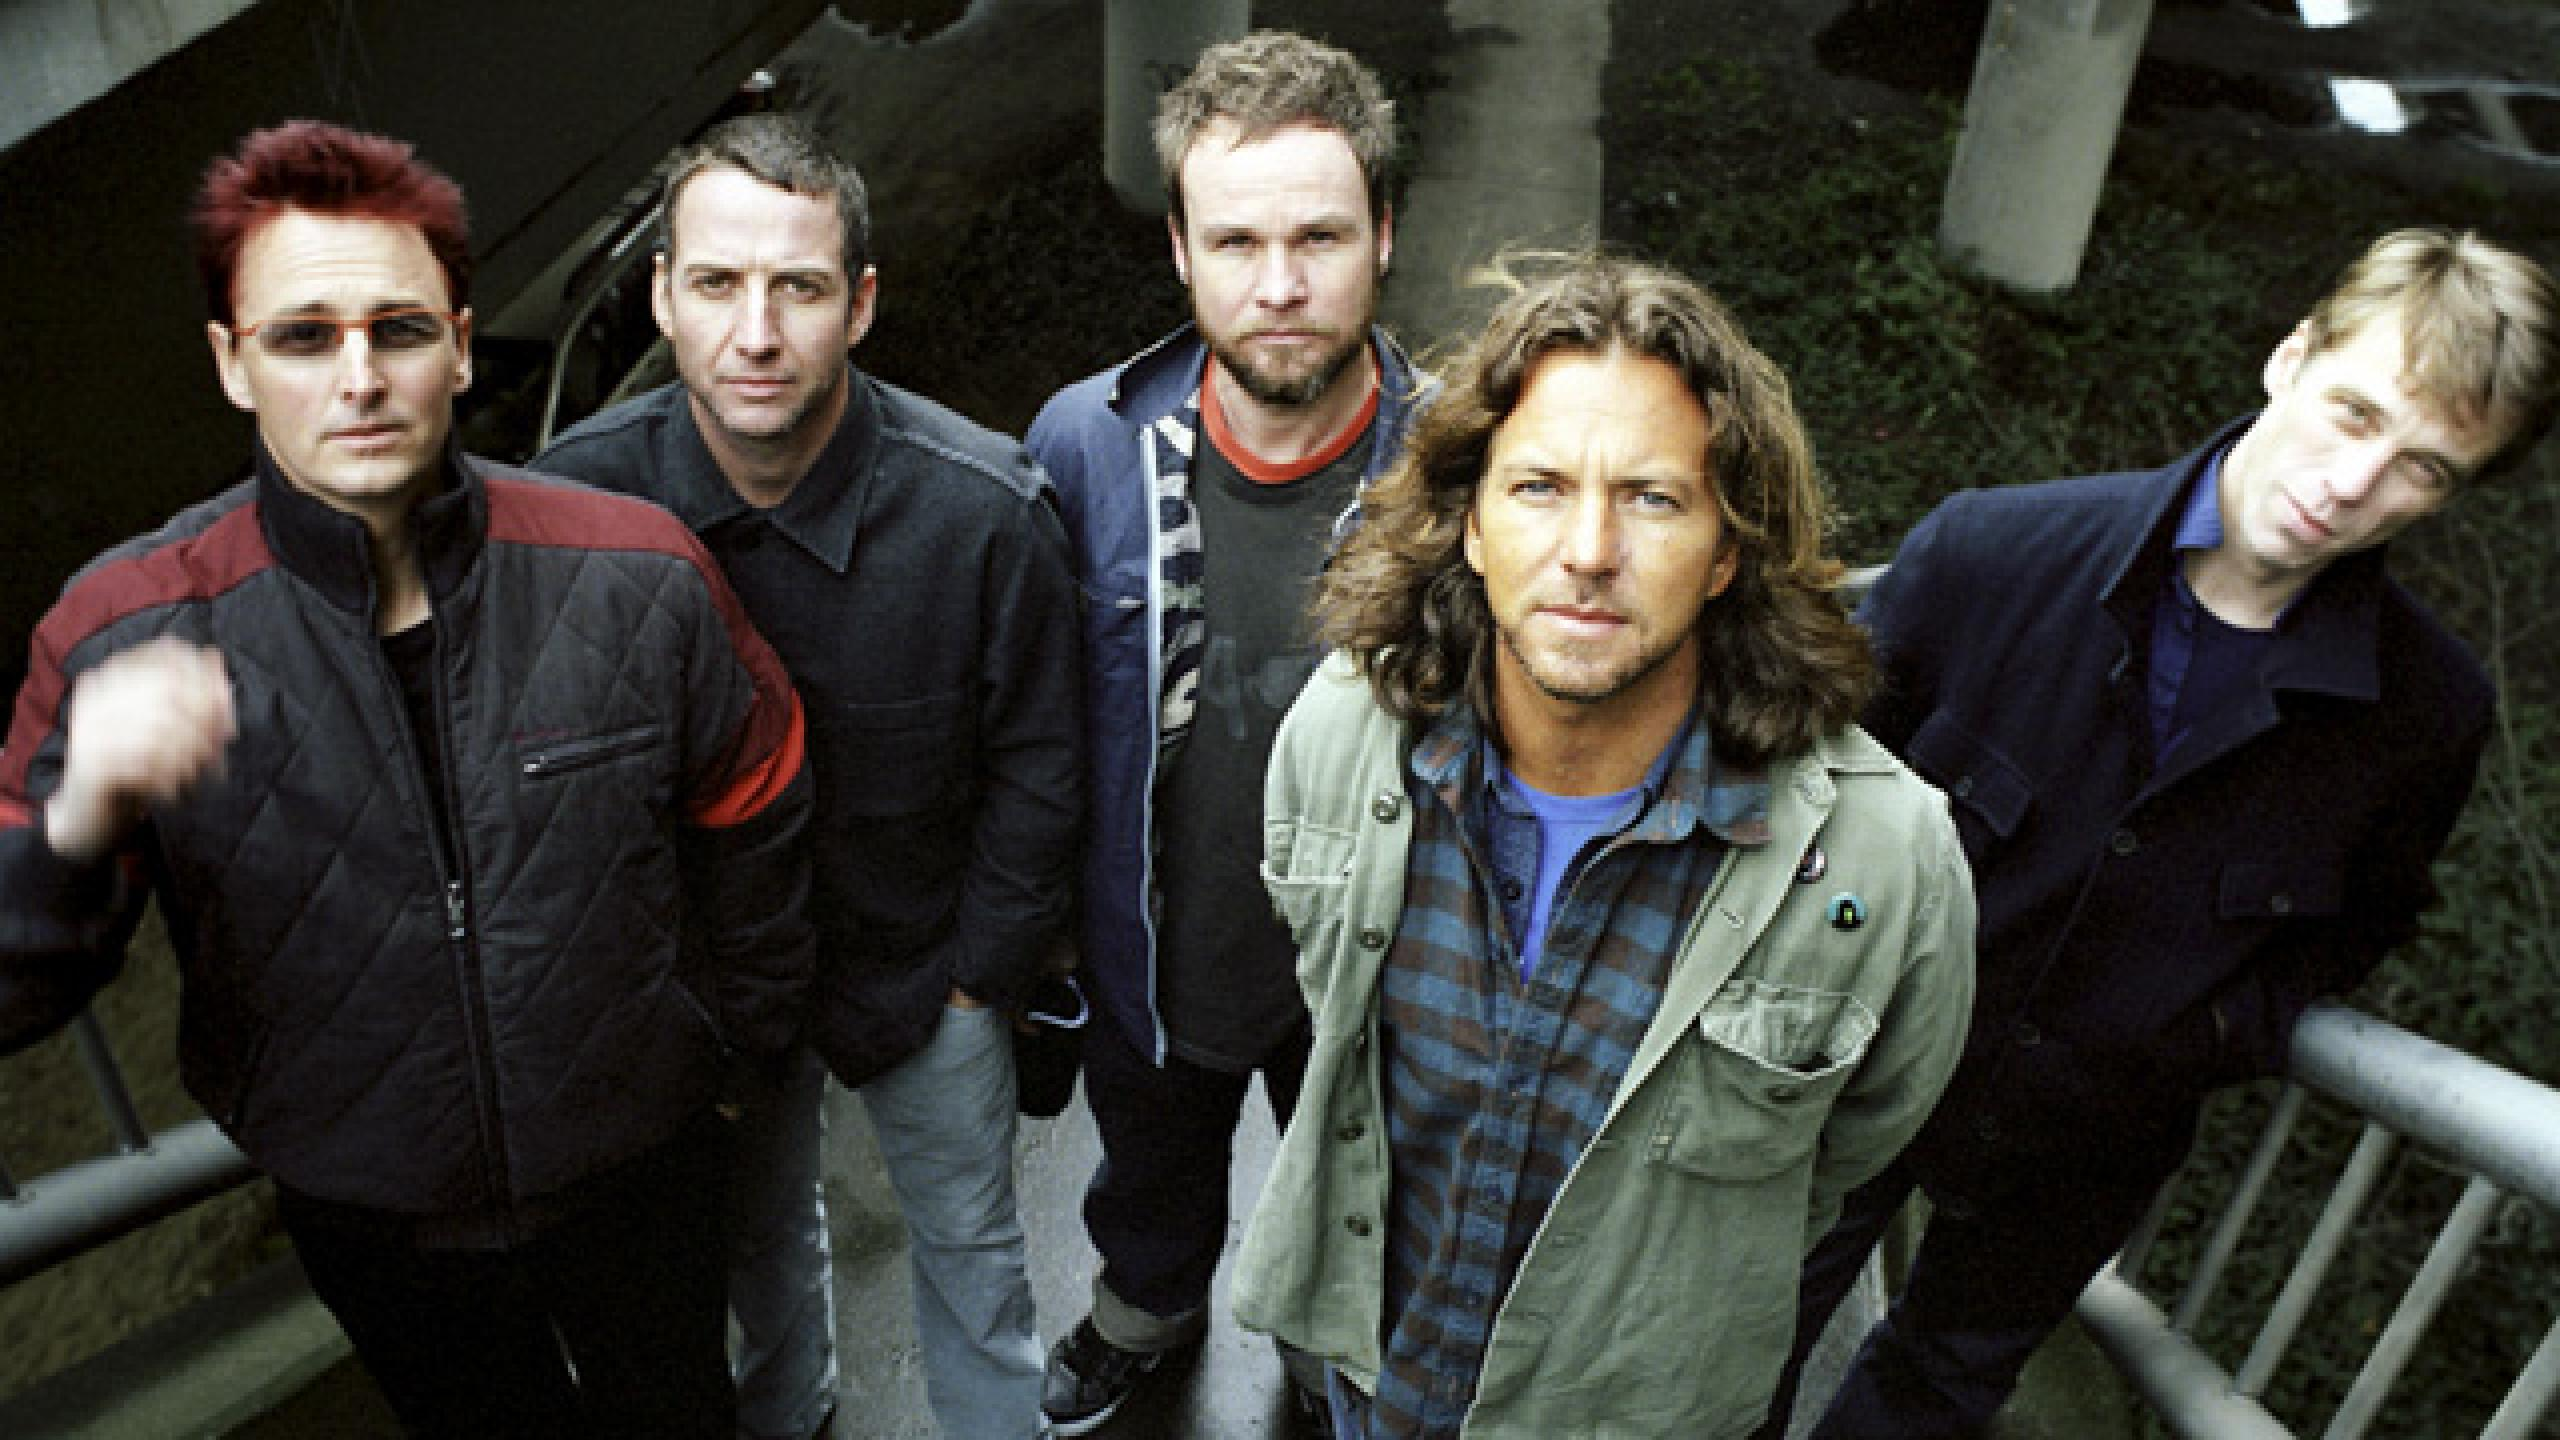 Eddie Vedder Tour Dates 2020 Pearl Jam tour dates 2019 2020. Pearl Jam tickets and concerts